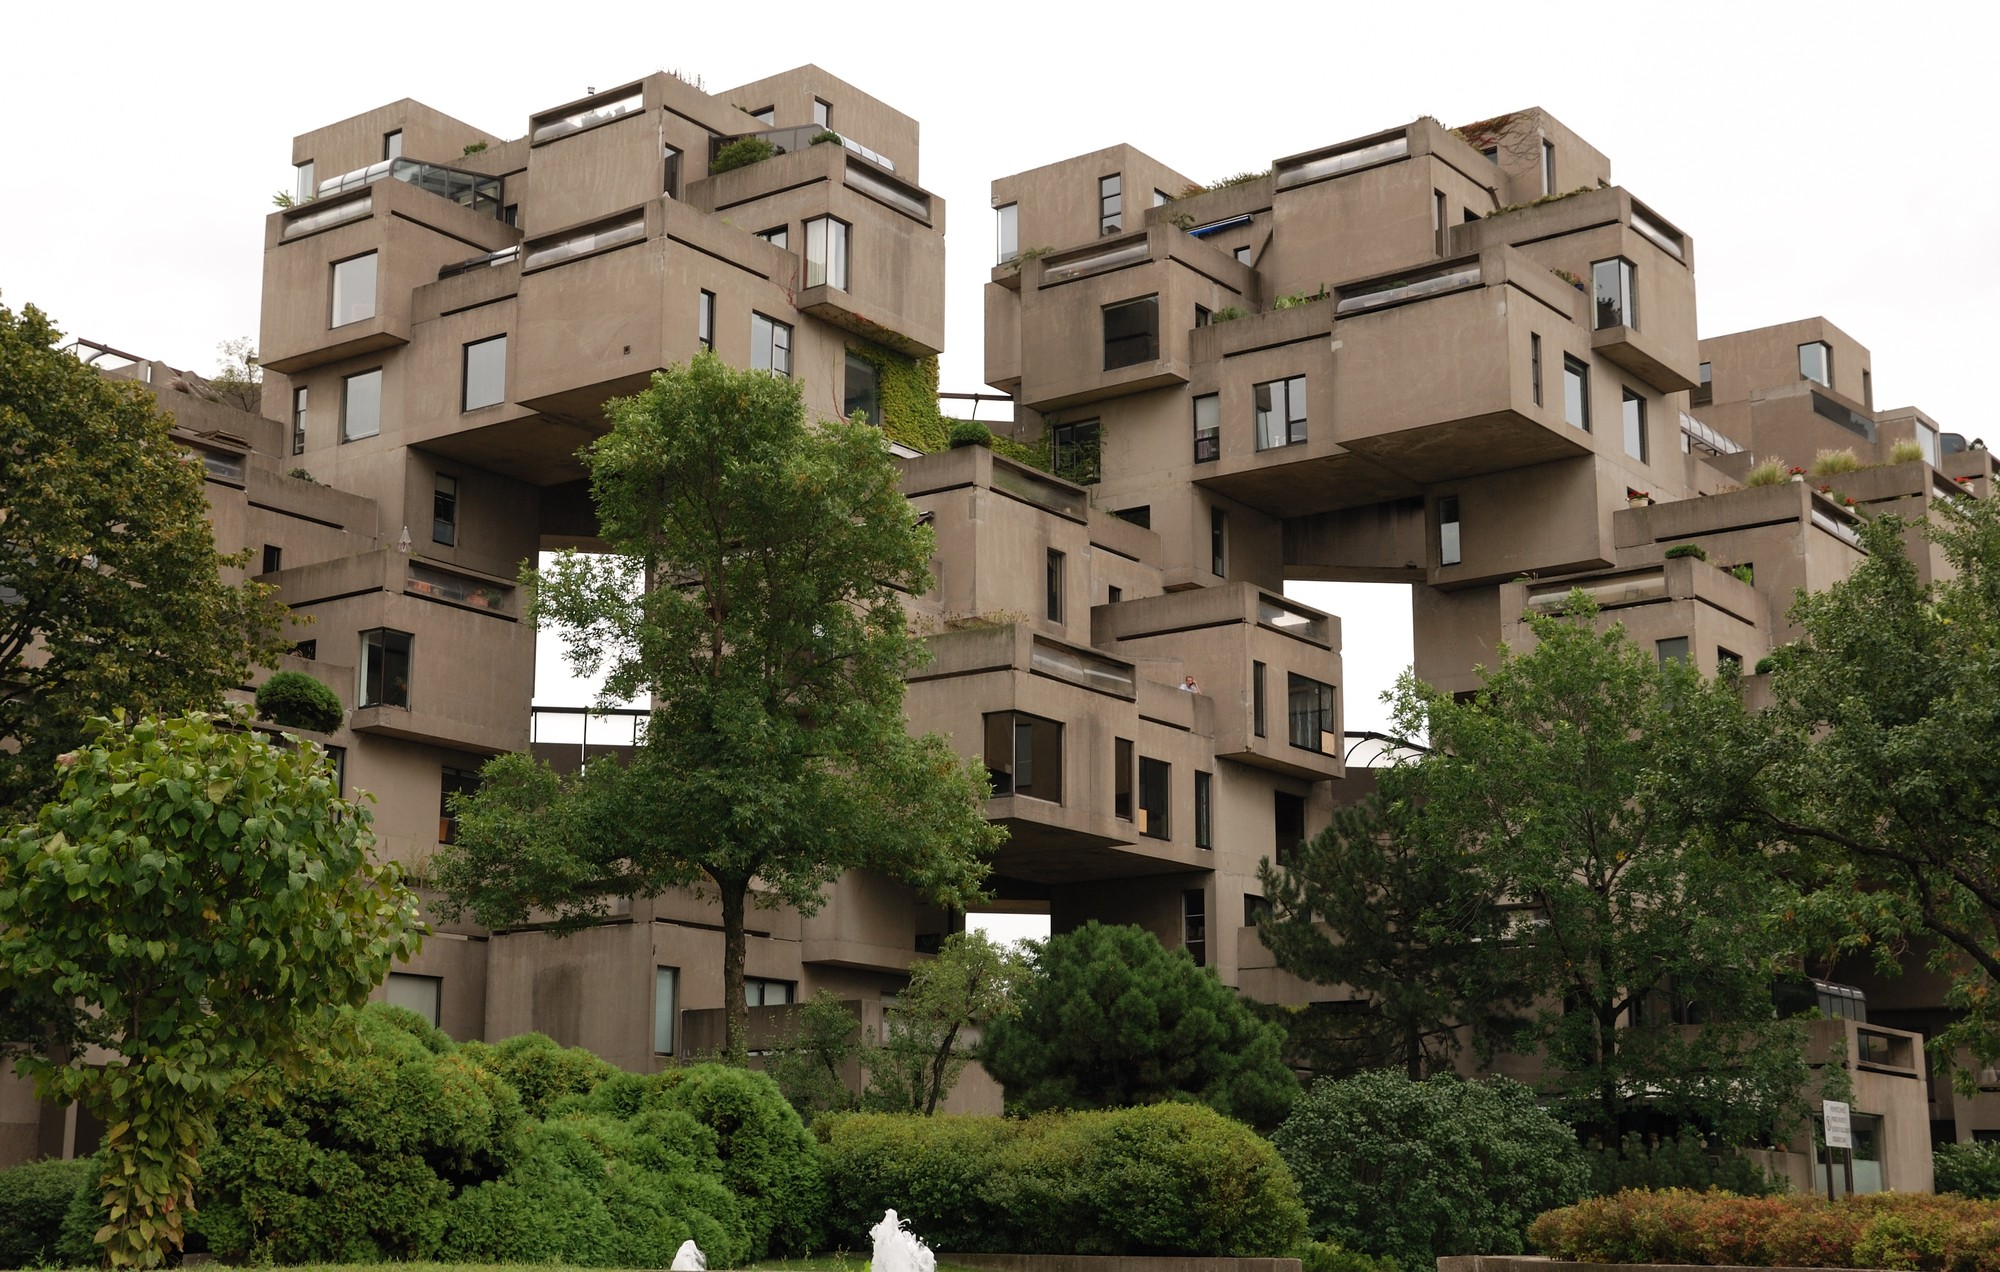 Ad Classics Habitat 67 Safdie Architects Archdaily File Outdoor Wiring Jpg Wikimedia Commons